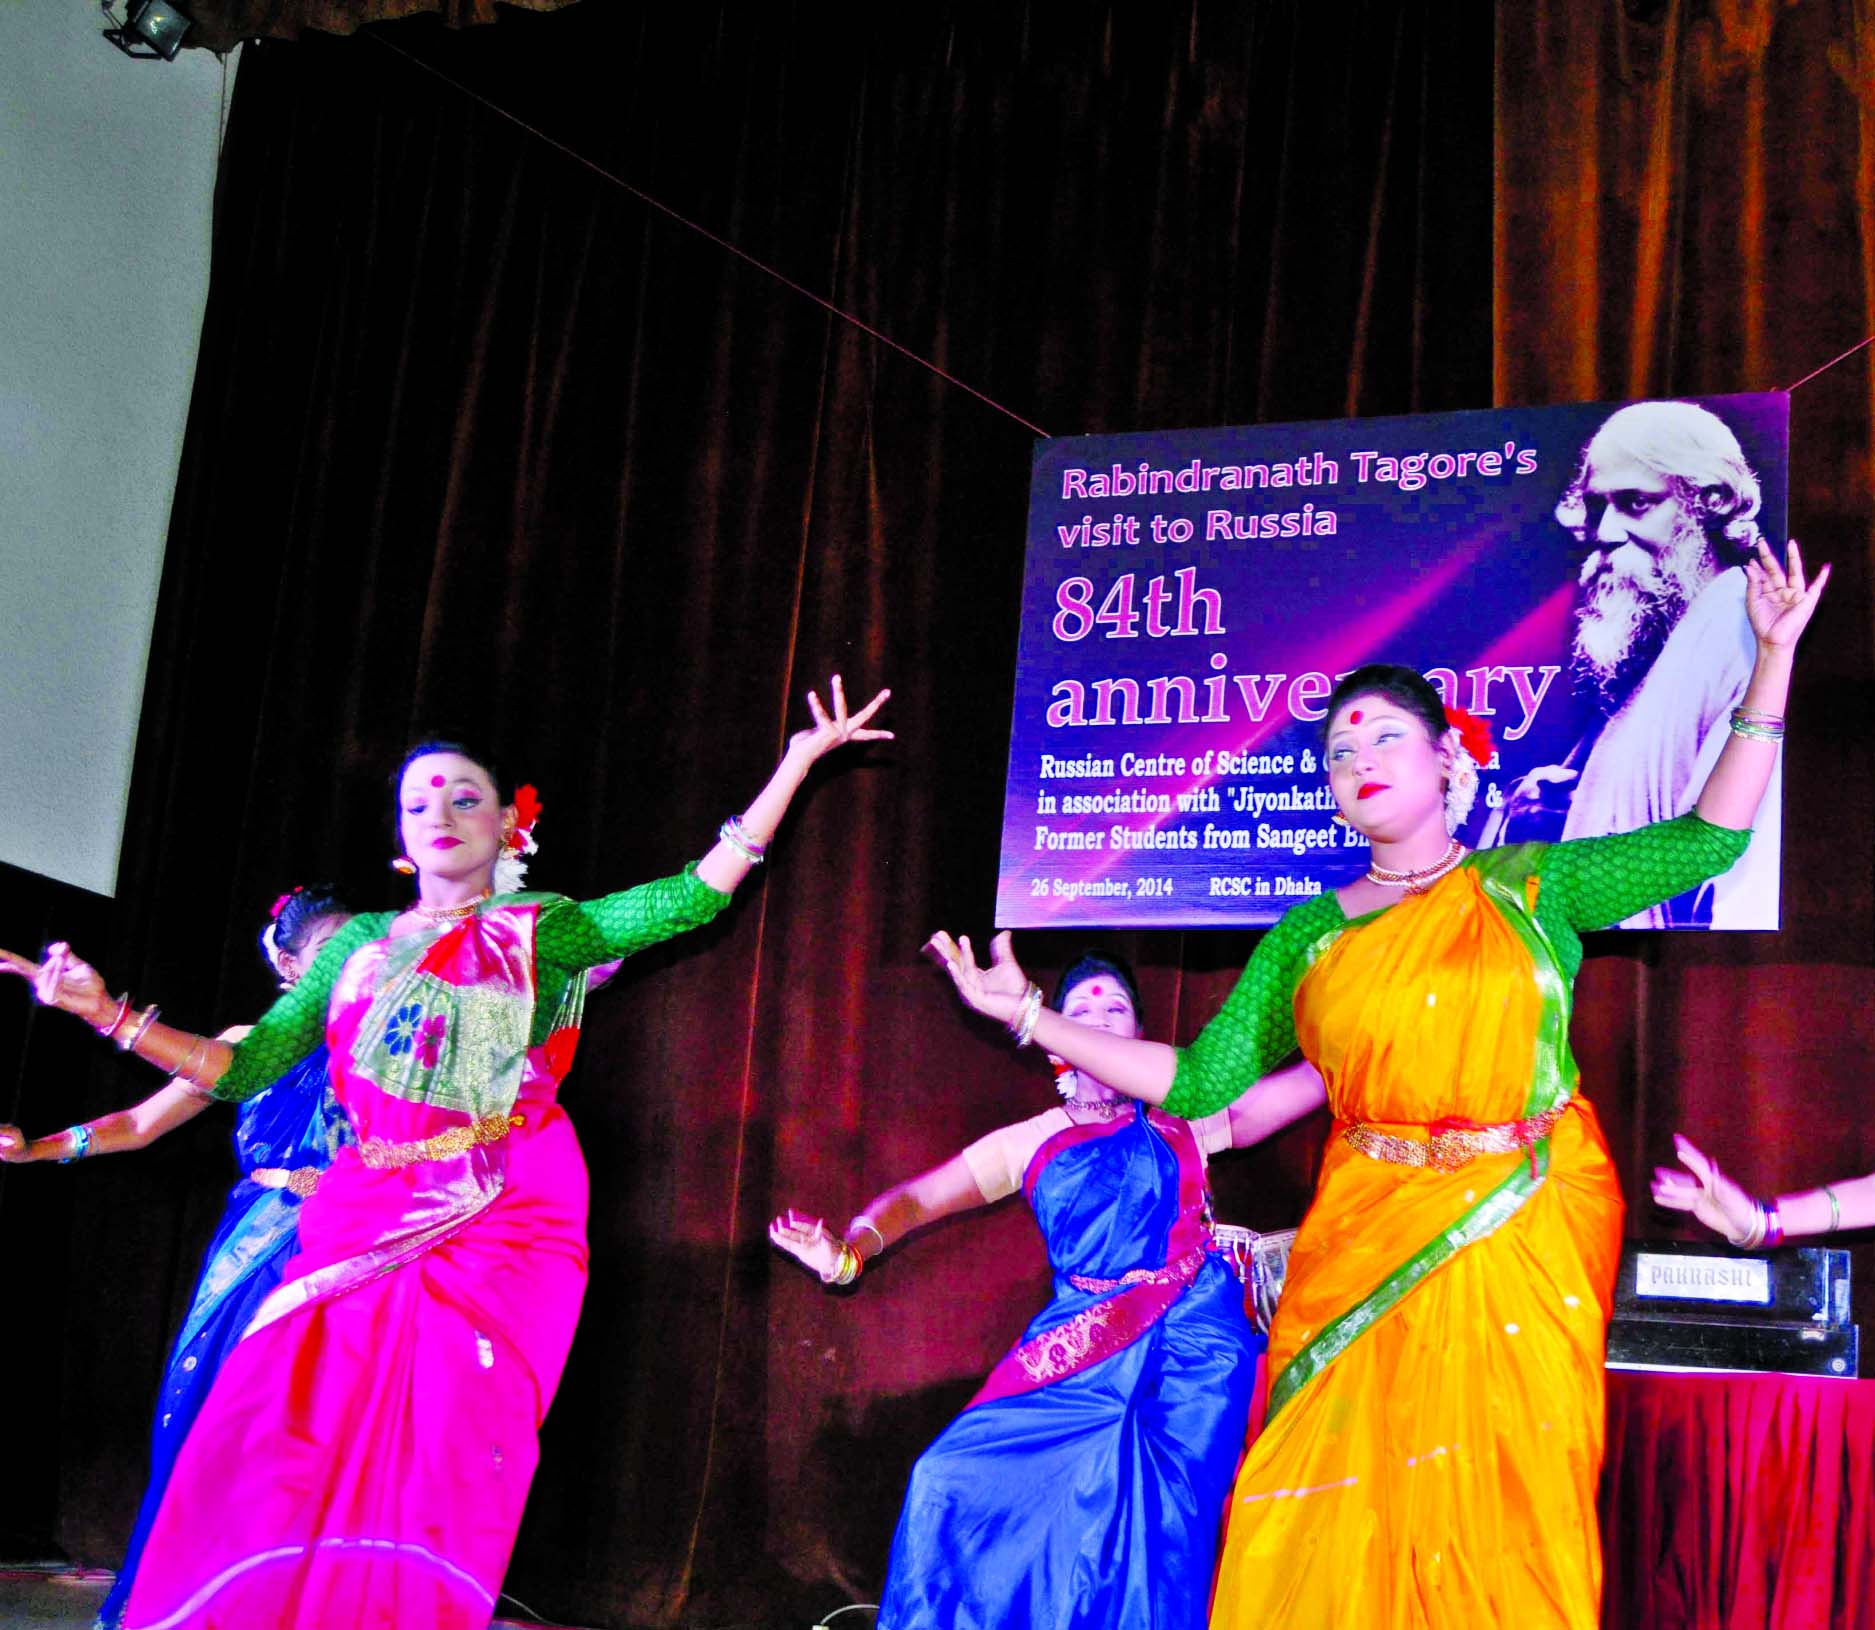 Poetry evening to mark 84th anniversary  of Rabindranath Tagore's visit to Russia